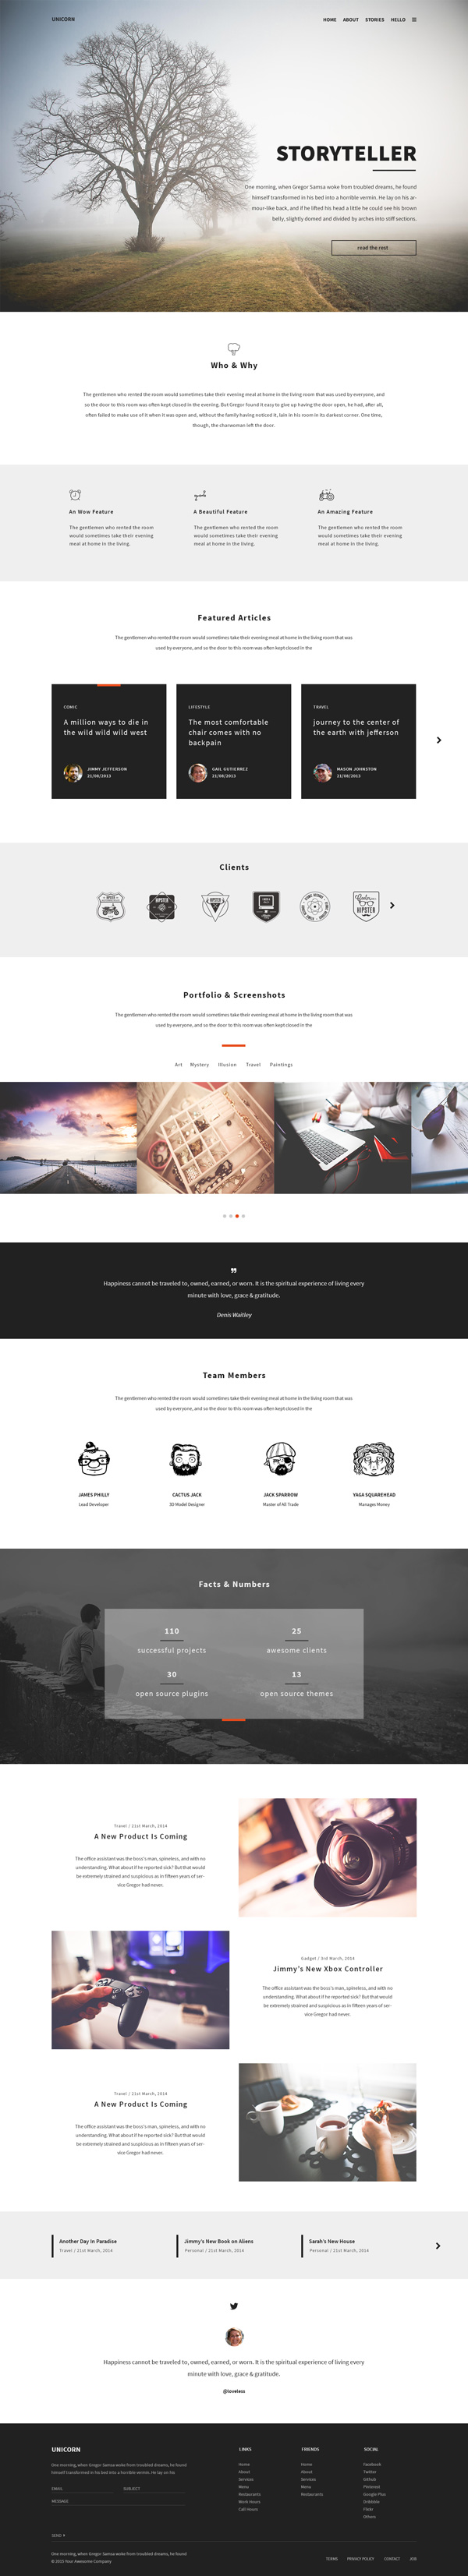 Unicorn-PSD-Template-600